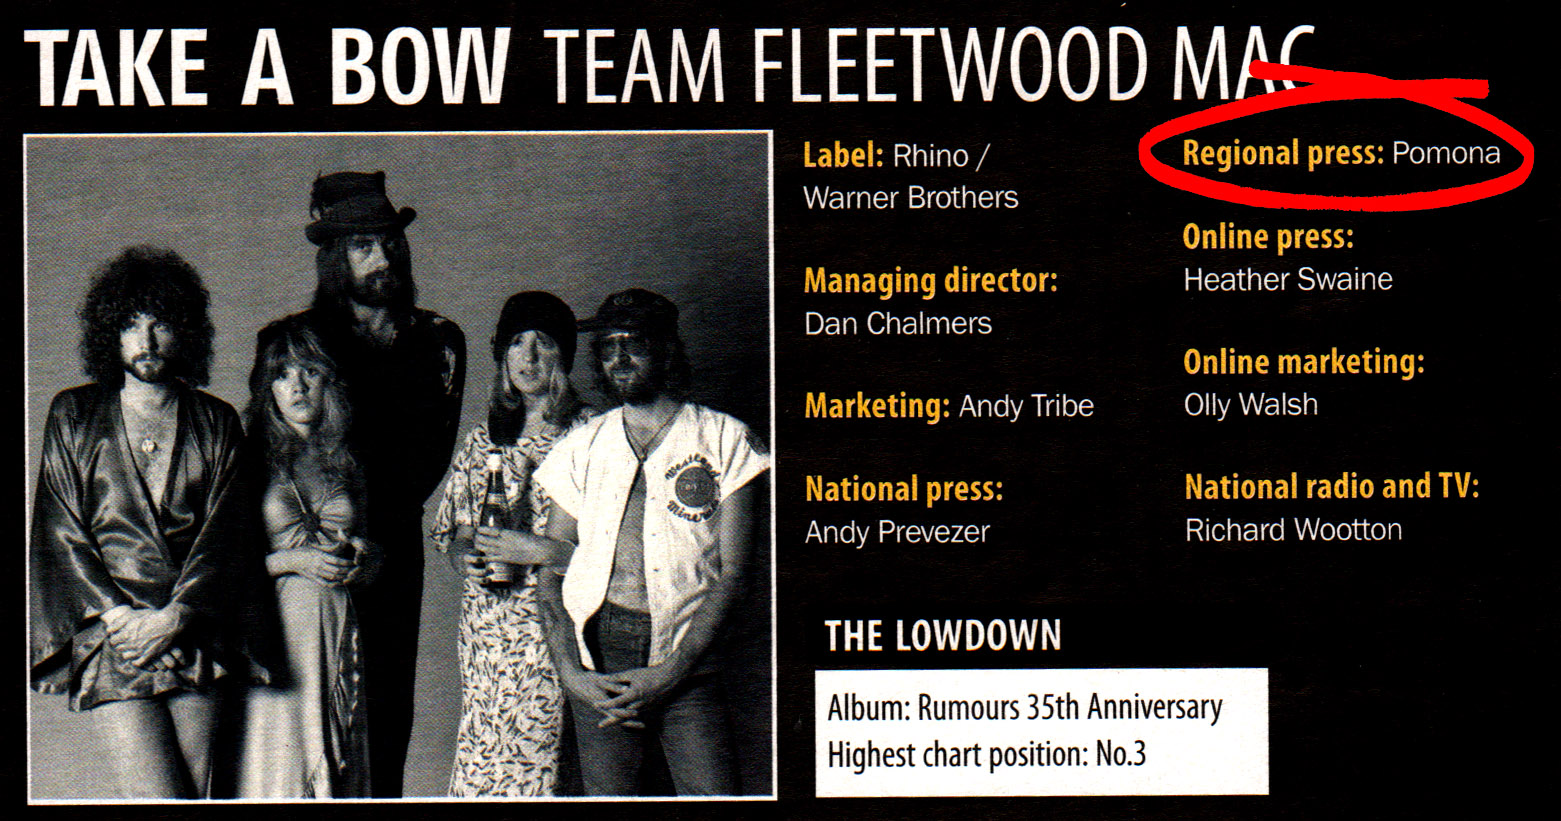 3 Fleetwood Mac Pomona regional press campaign